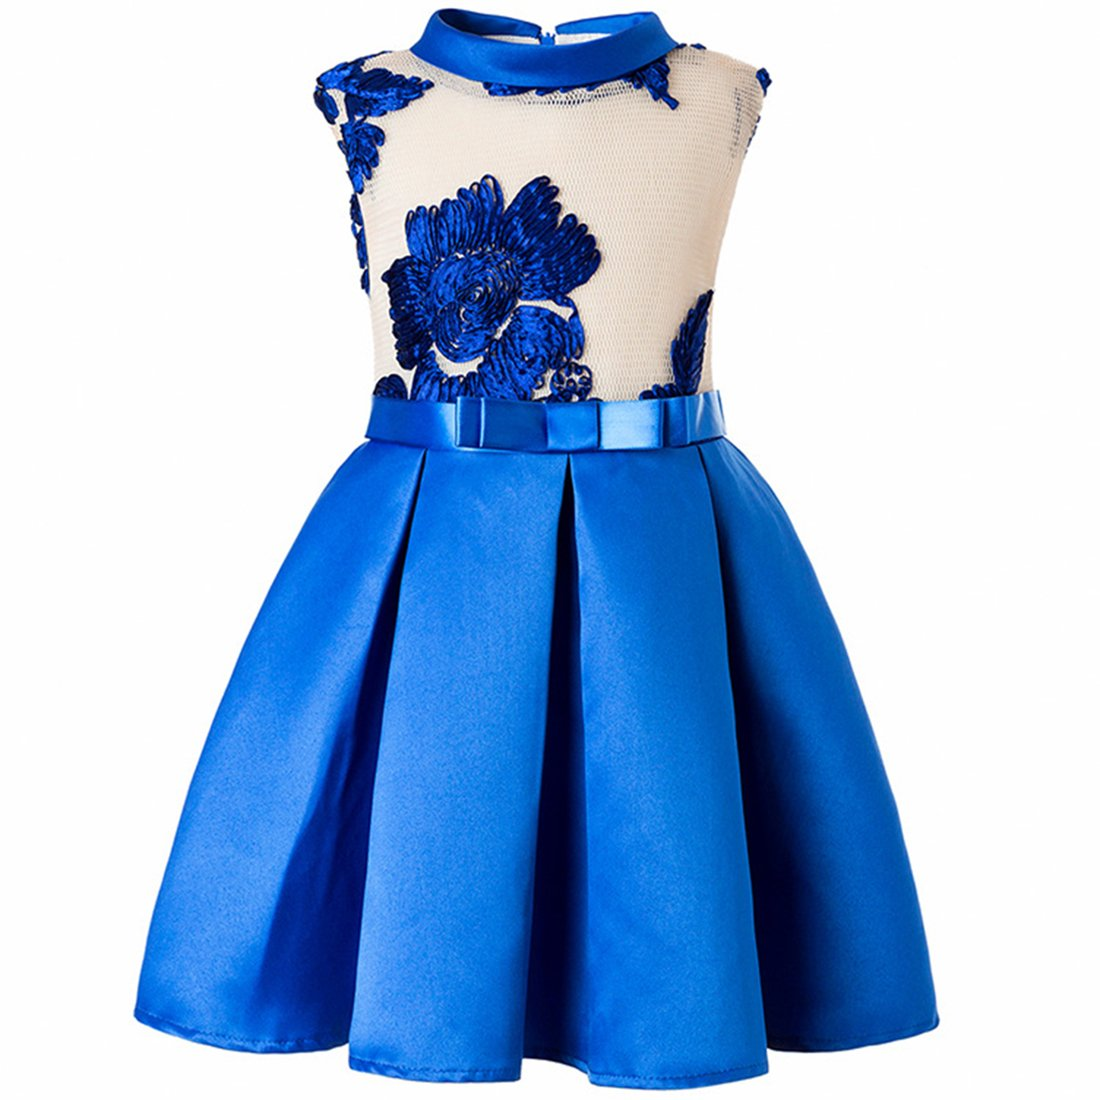 Amazon.com: ADHS Girls Party Dresses Girls Special Occasion Dresses Little Girls Flower Dresses: Clothing